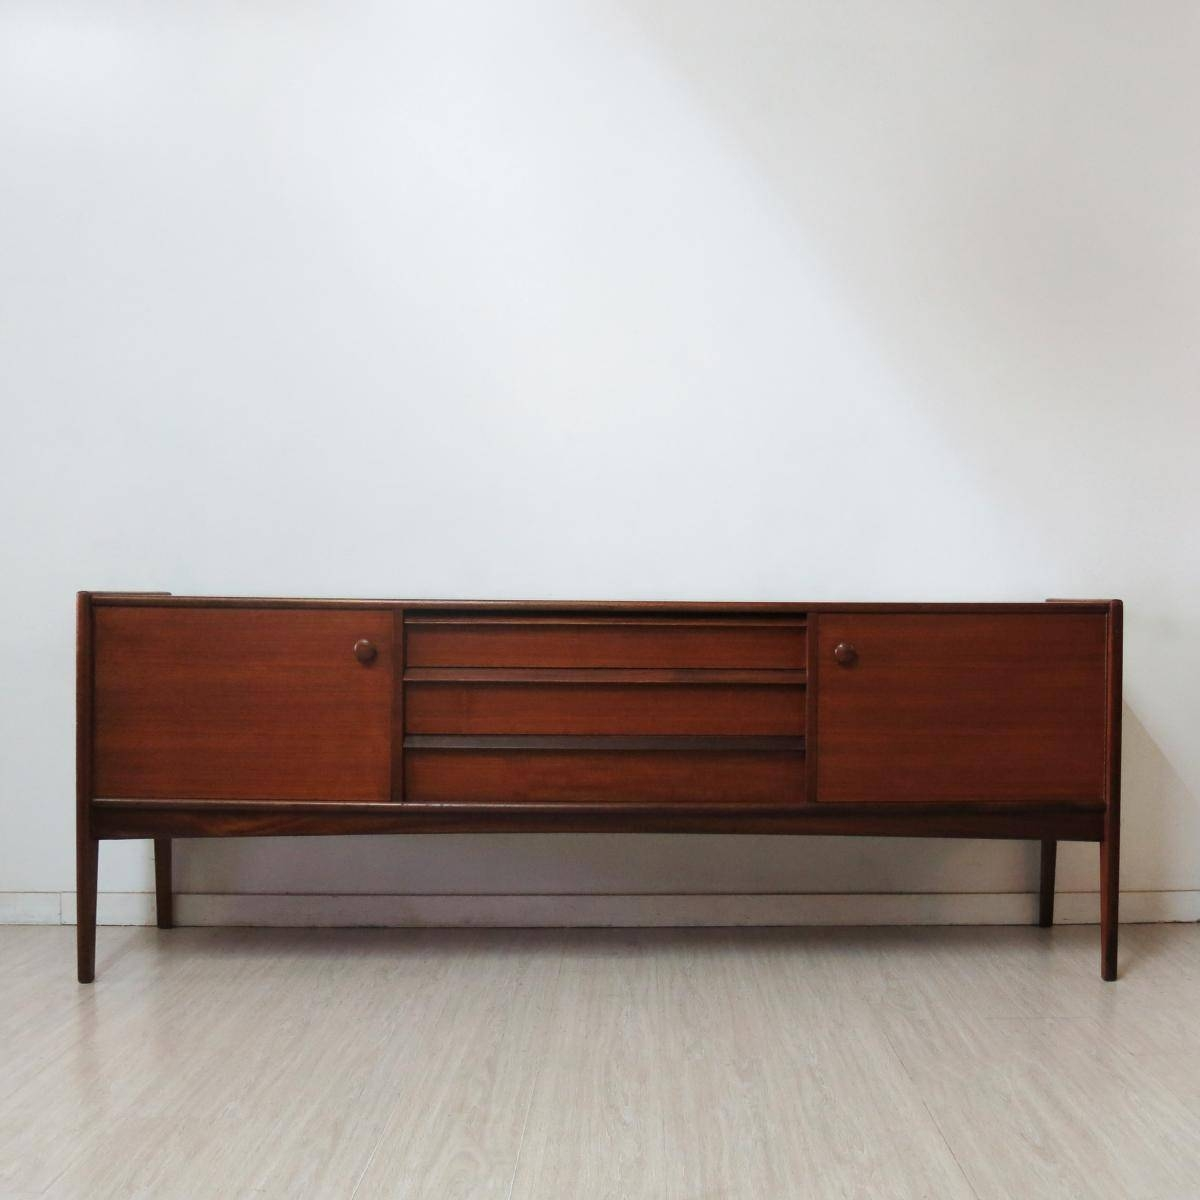 Vintage British Silva Sideboardjohn Herbert For Younger, 1960S Within Most Recently Released A Younger Sideboards (#10 of 15)